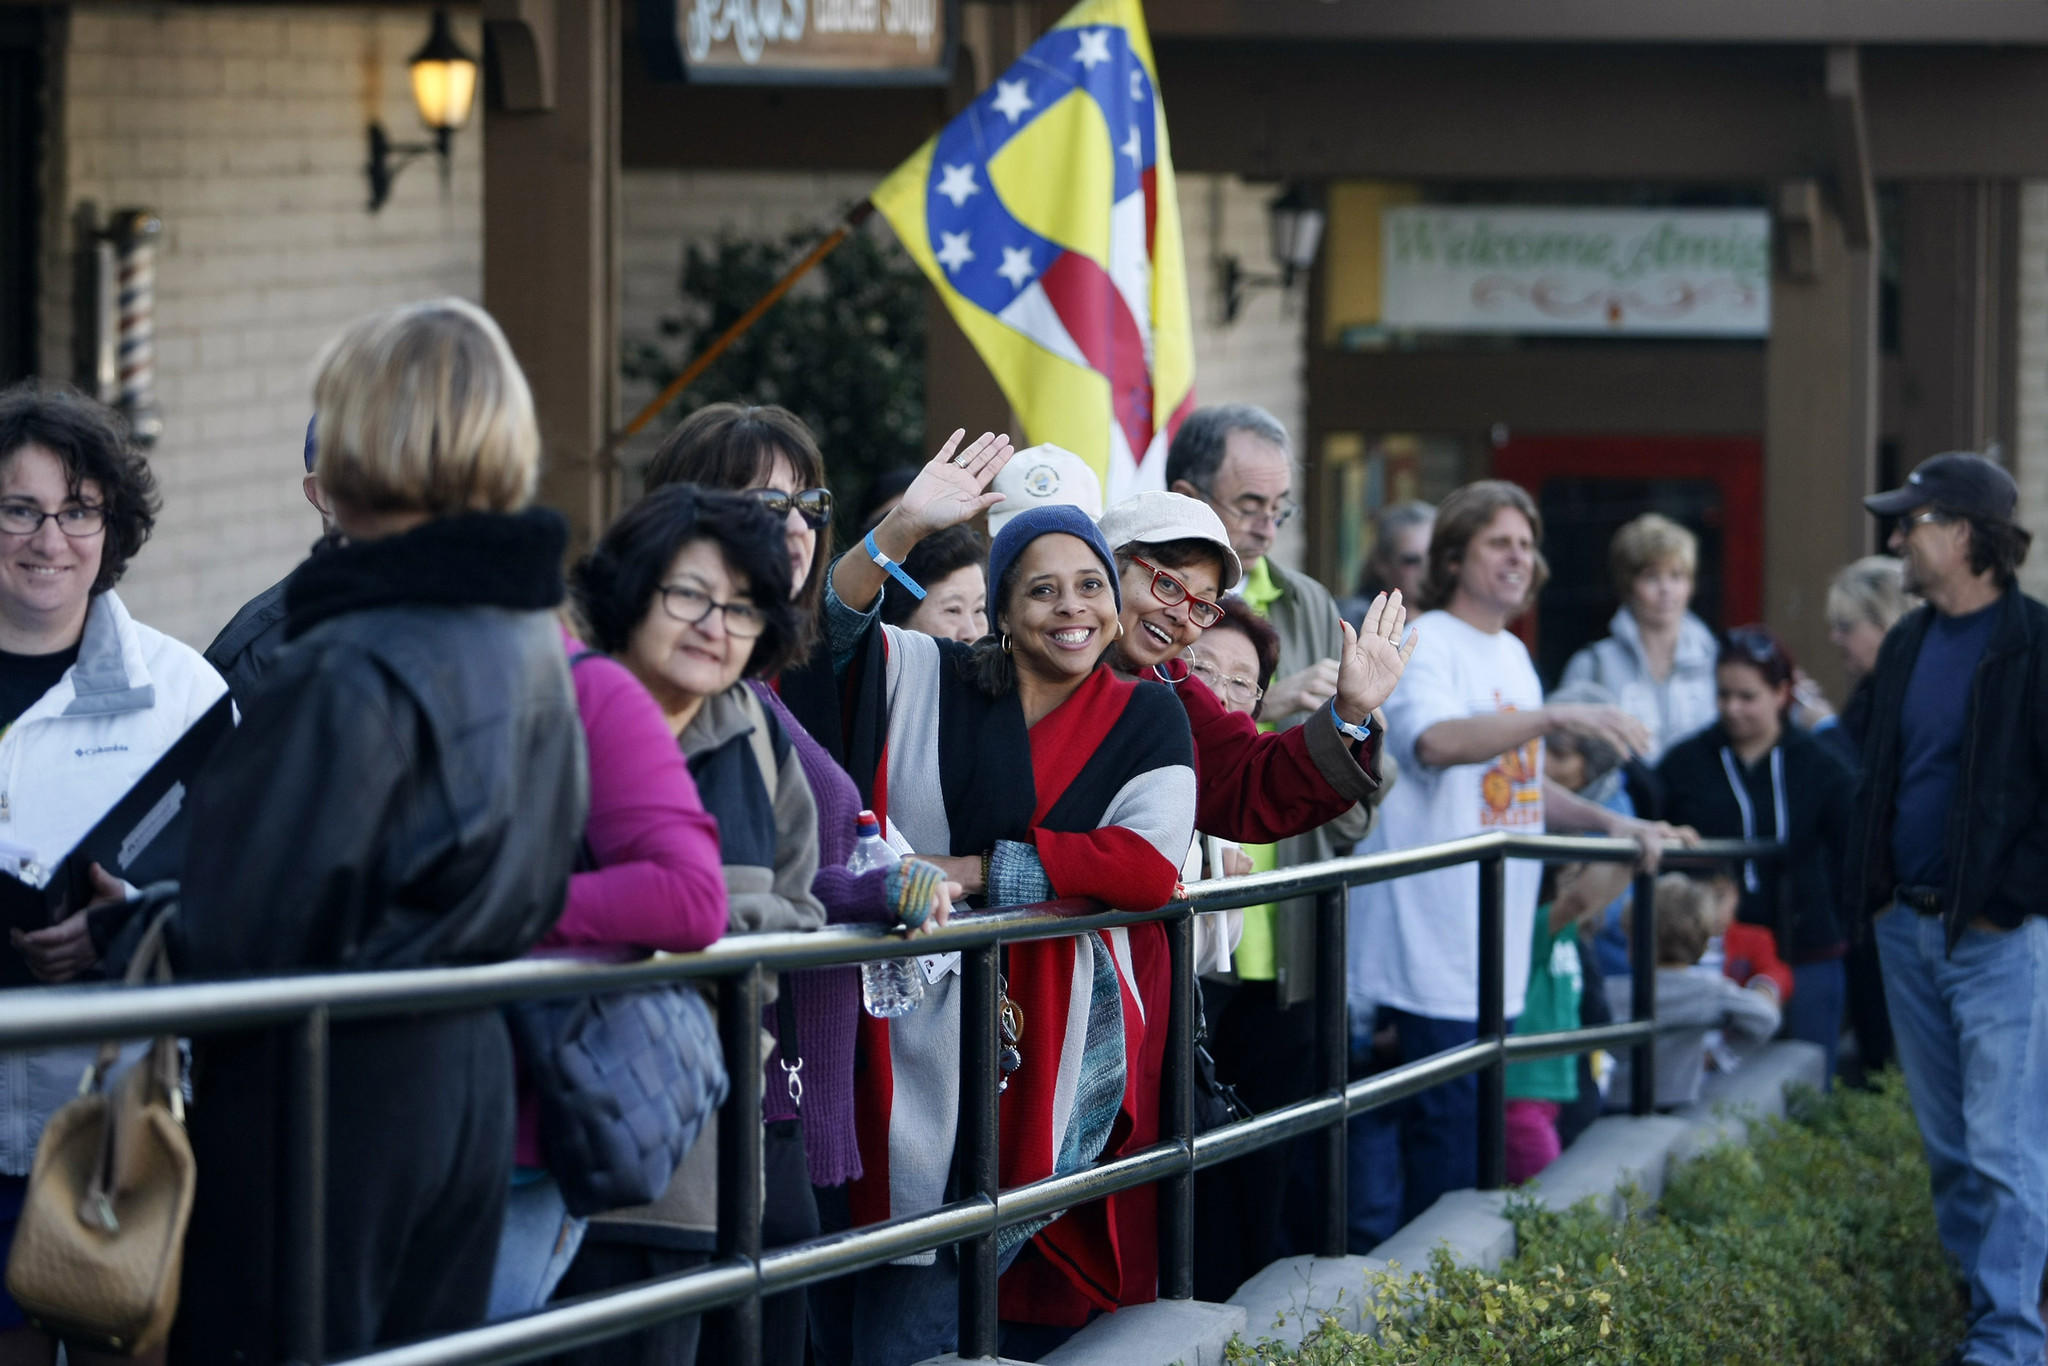 Gelson's customers lined up for the grand opening ceremony at the new store on the 600 block of Foothill Blvd. in La Cañada Flintridge on Thursday, March 27, 2014.